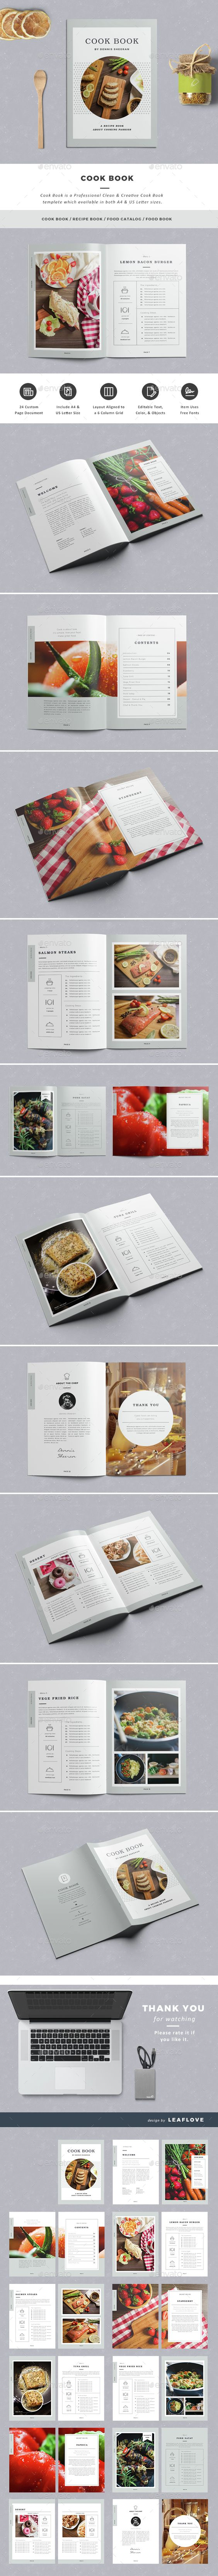 24 Pages Cook Book / Recipe Book Template InDesign INDD. Download here: http://graphicriver.net/item/cook-book-recipe-book/15308304?ref=ksioks